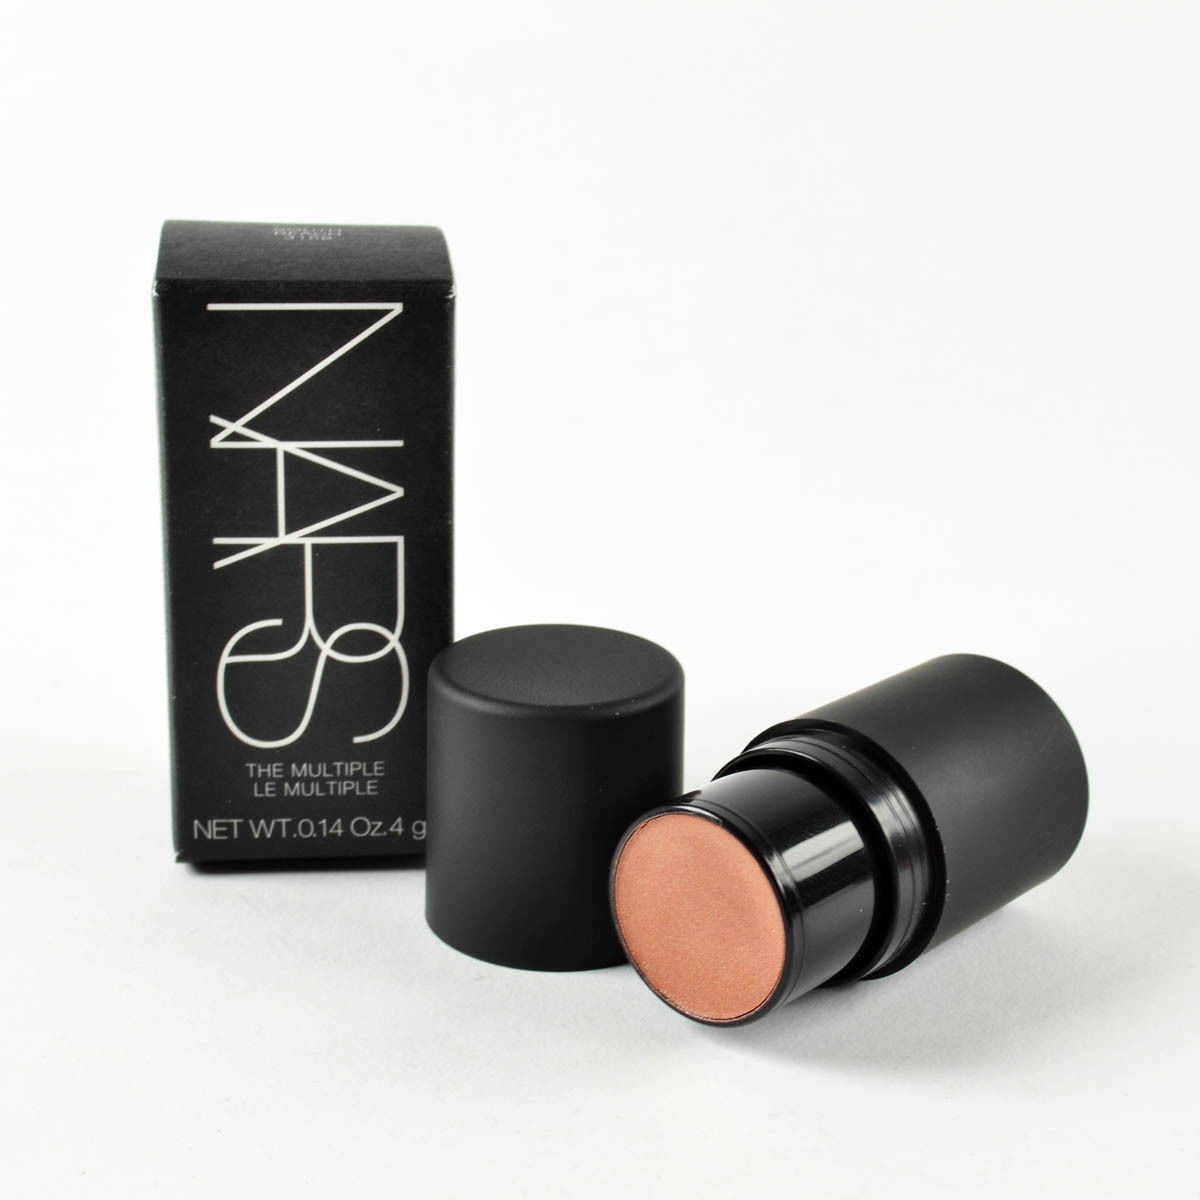 Nars The Multiple in South Beach - NIB - Travel Size - $7.98